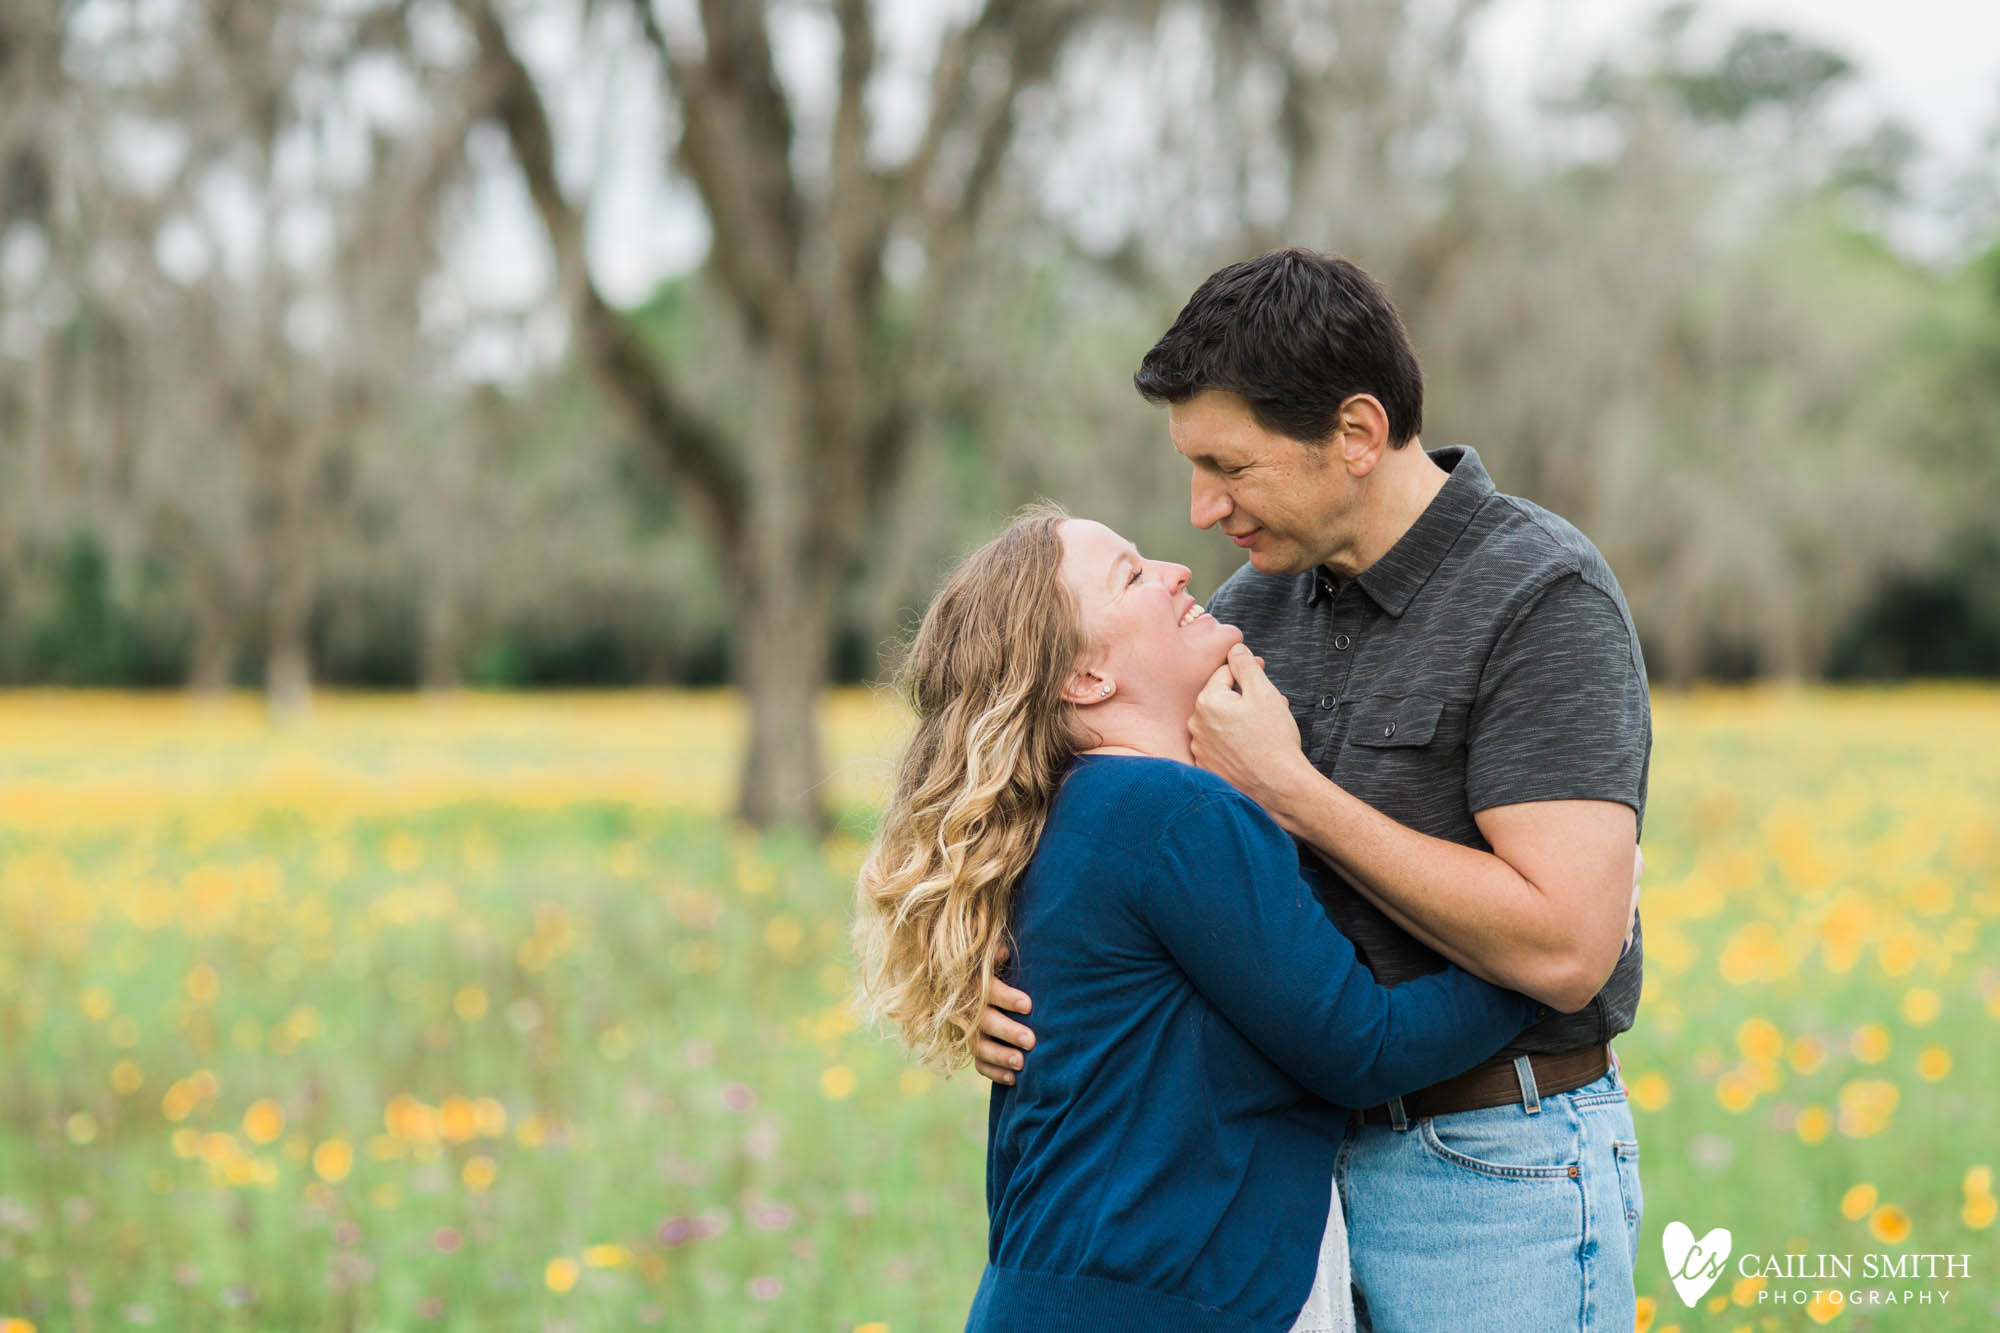 Christie_Nathan_Flower_Field_engagement_Photography_008.jpg